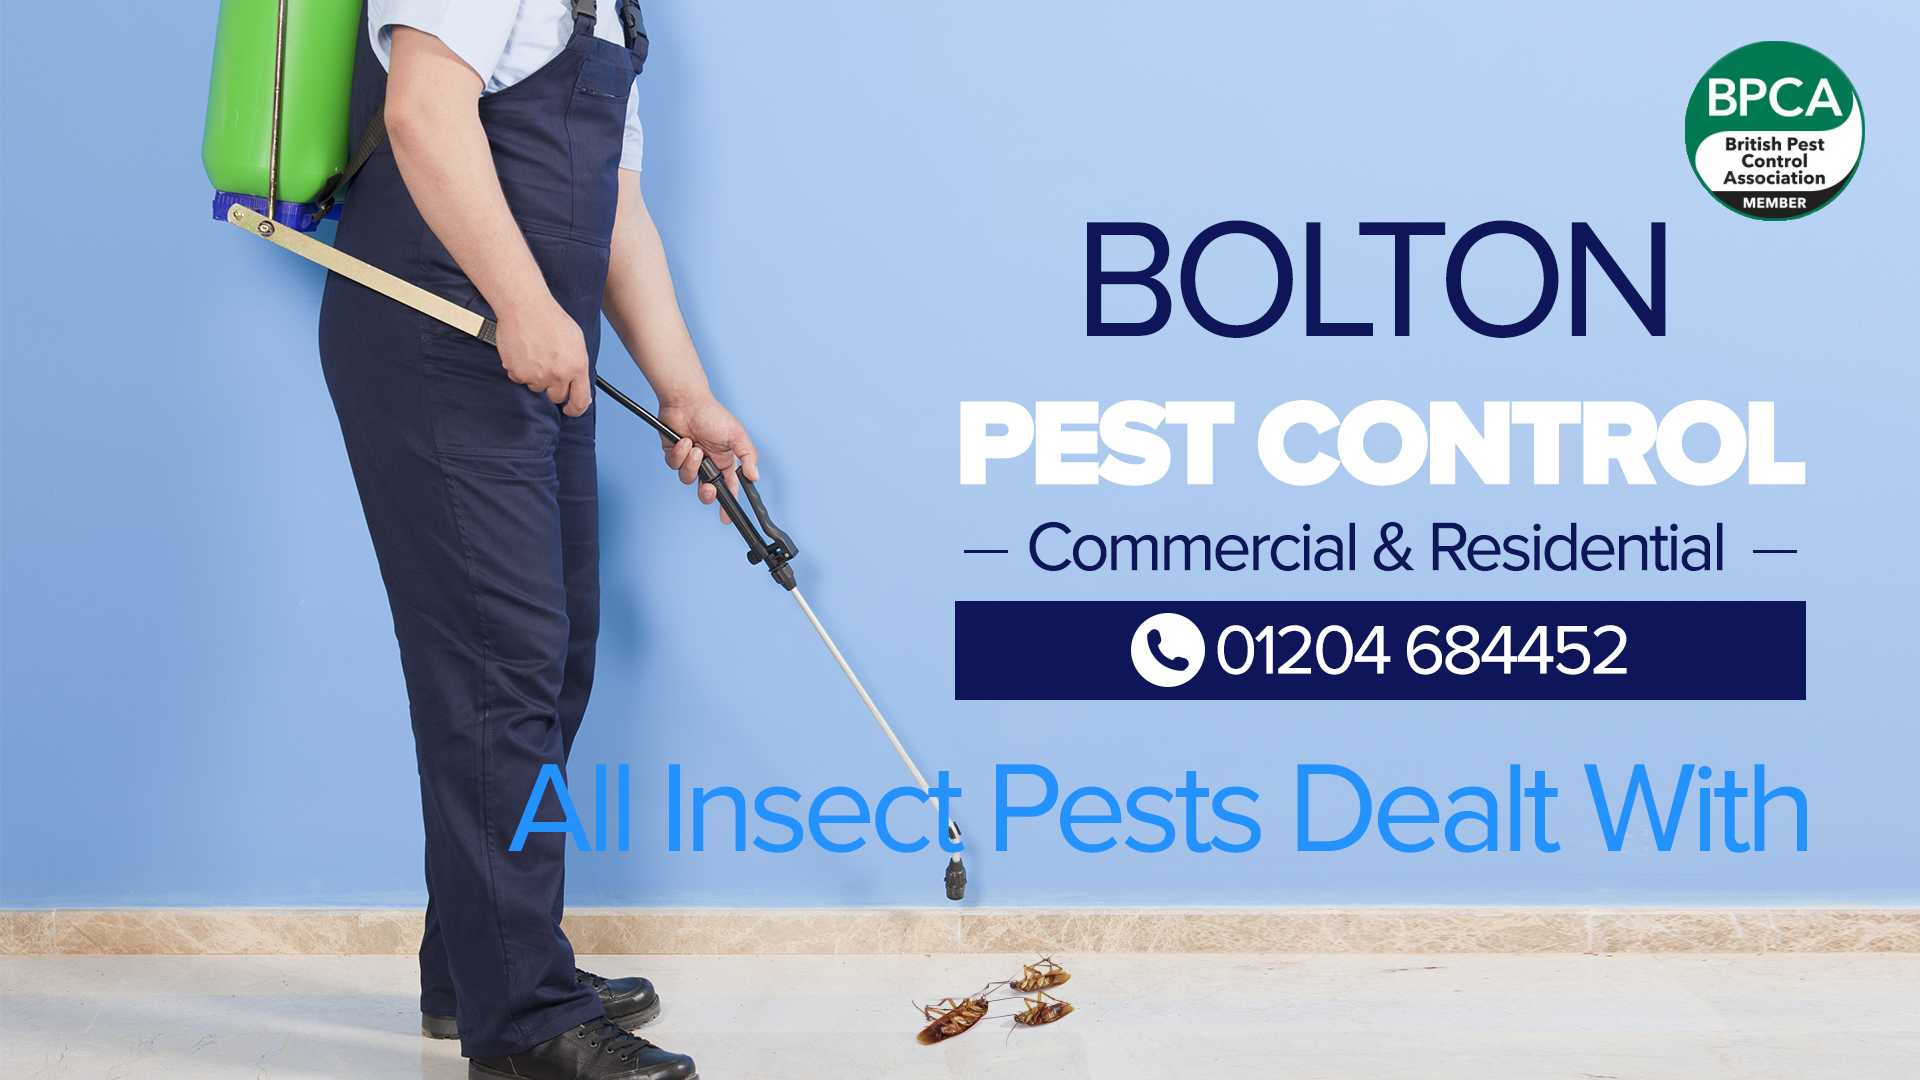 insect pest control bolton